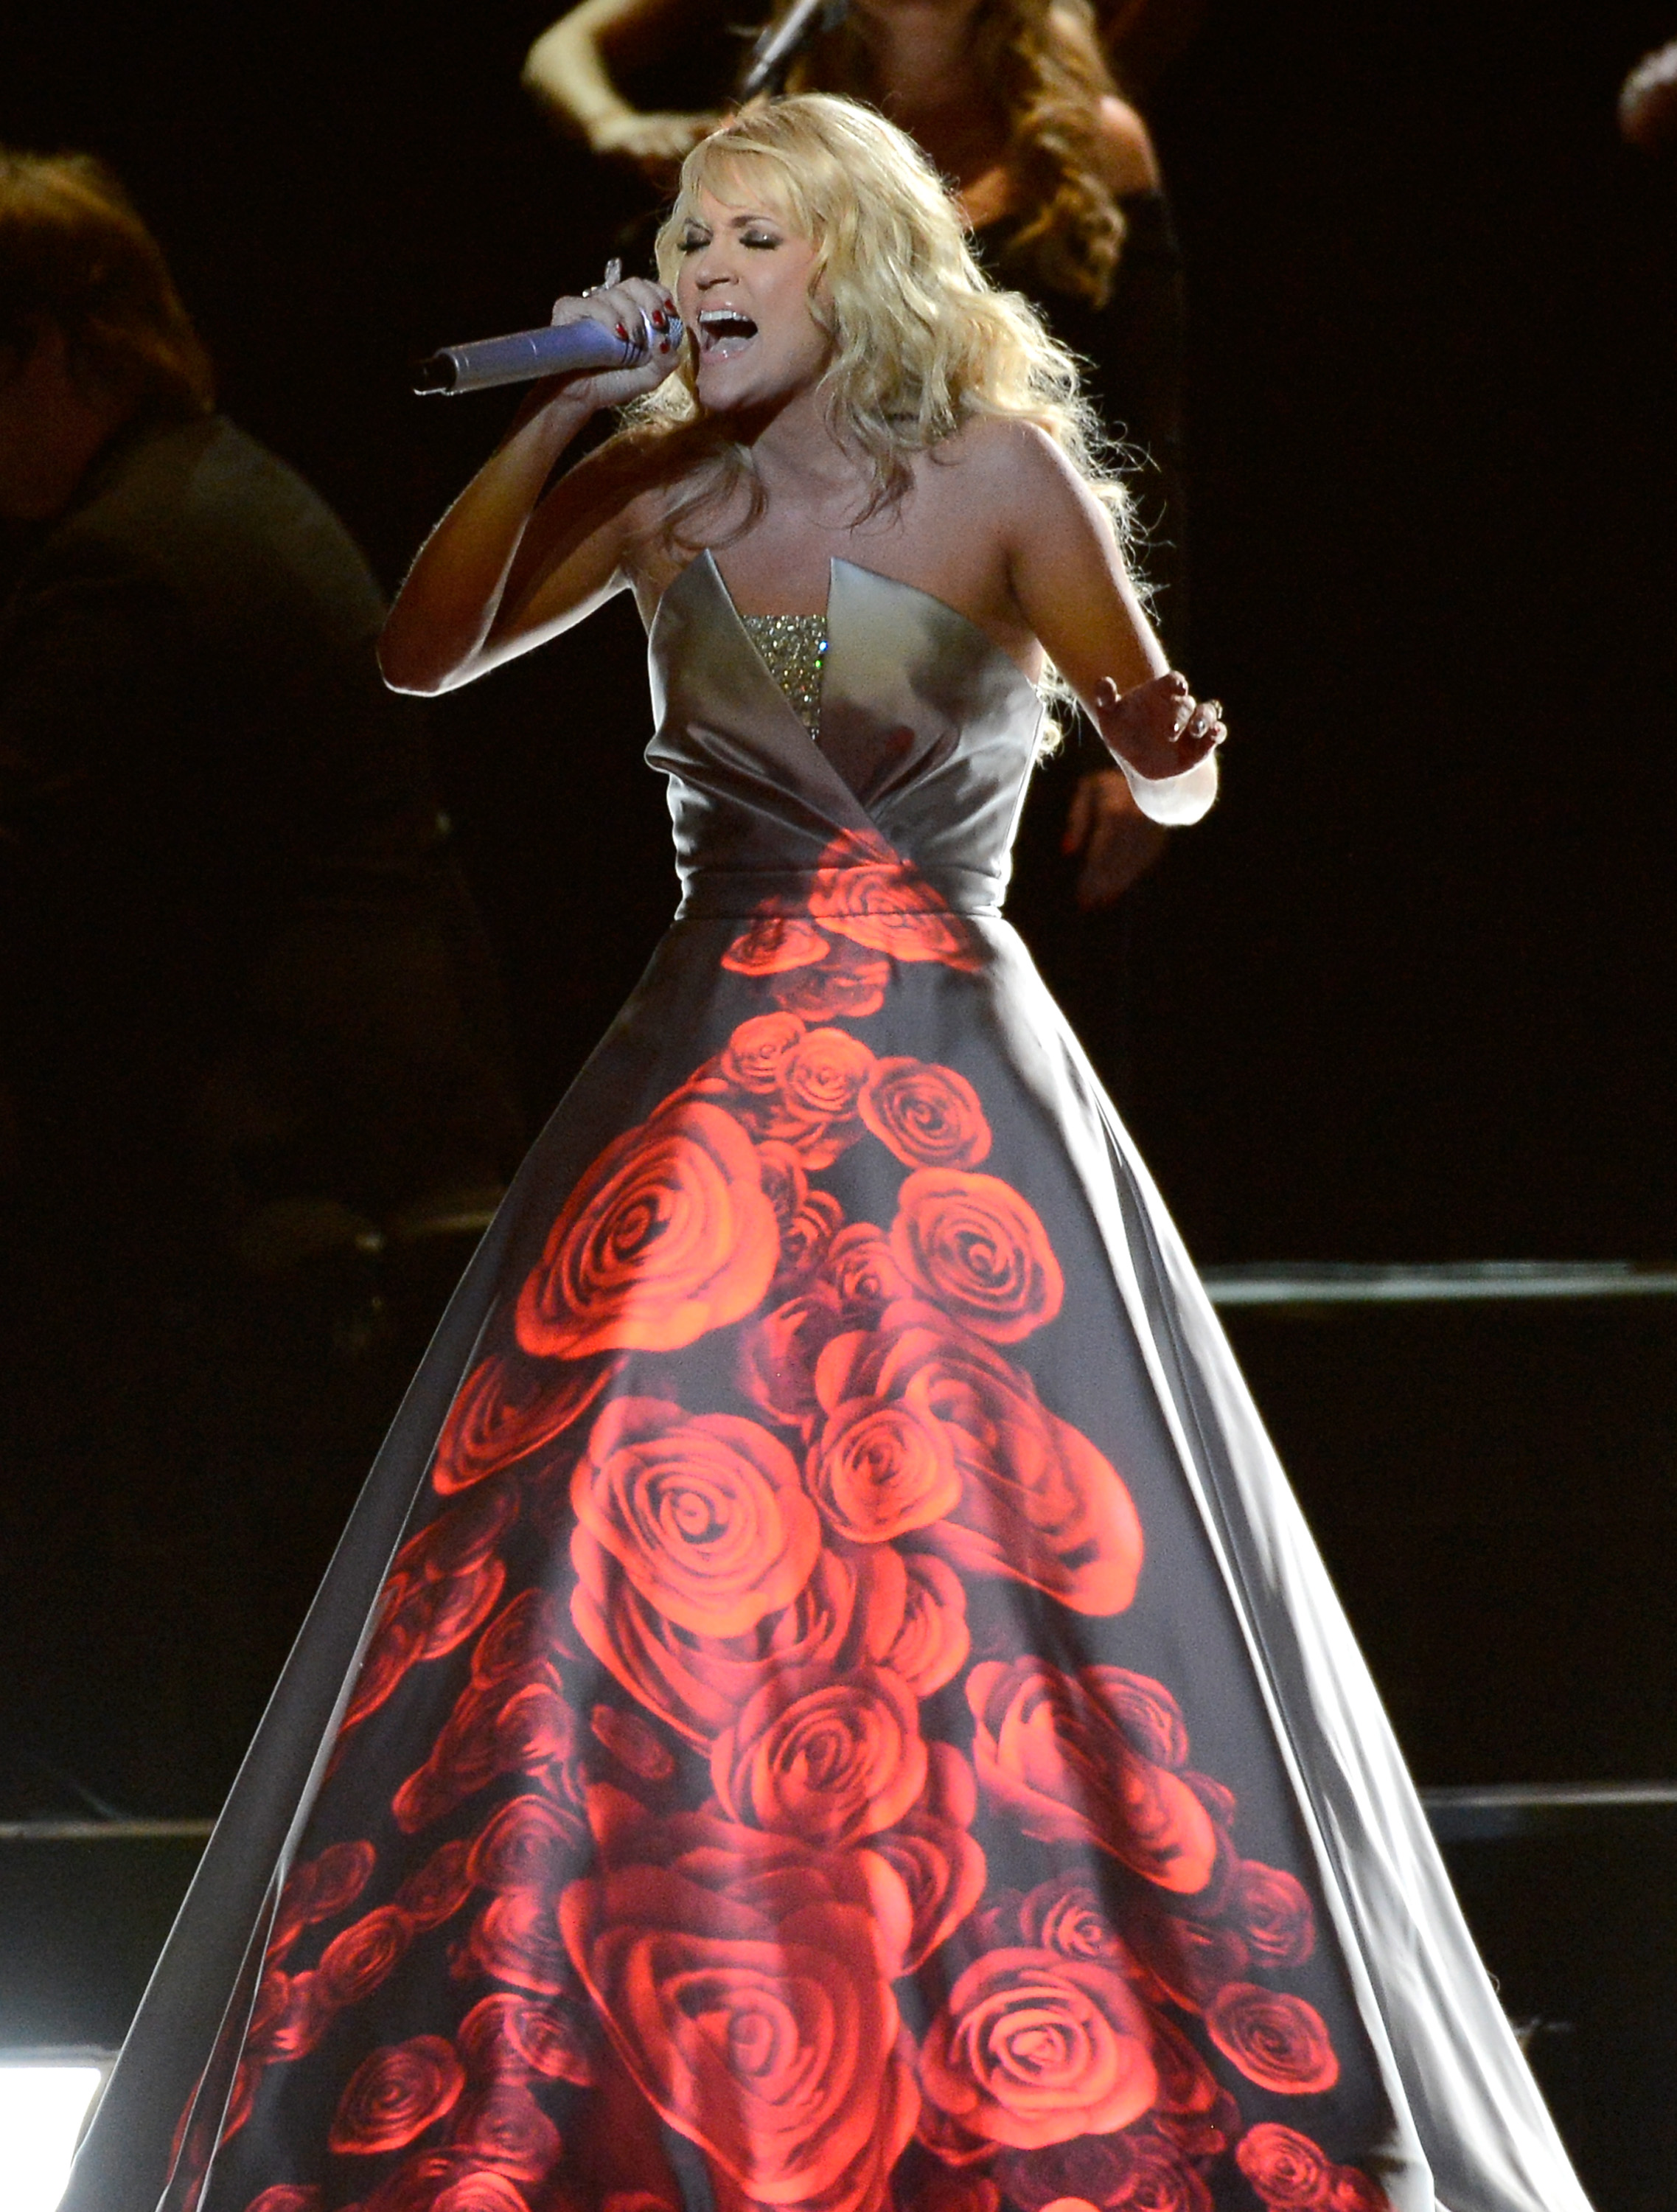 Carrie Underwood Carrie Underwoods Dress Takes Over GRAMMY Performance